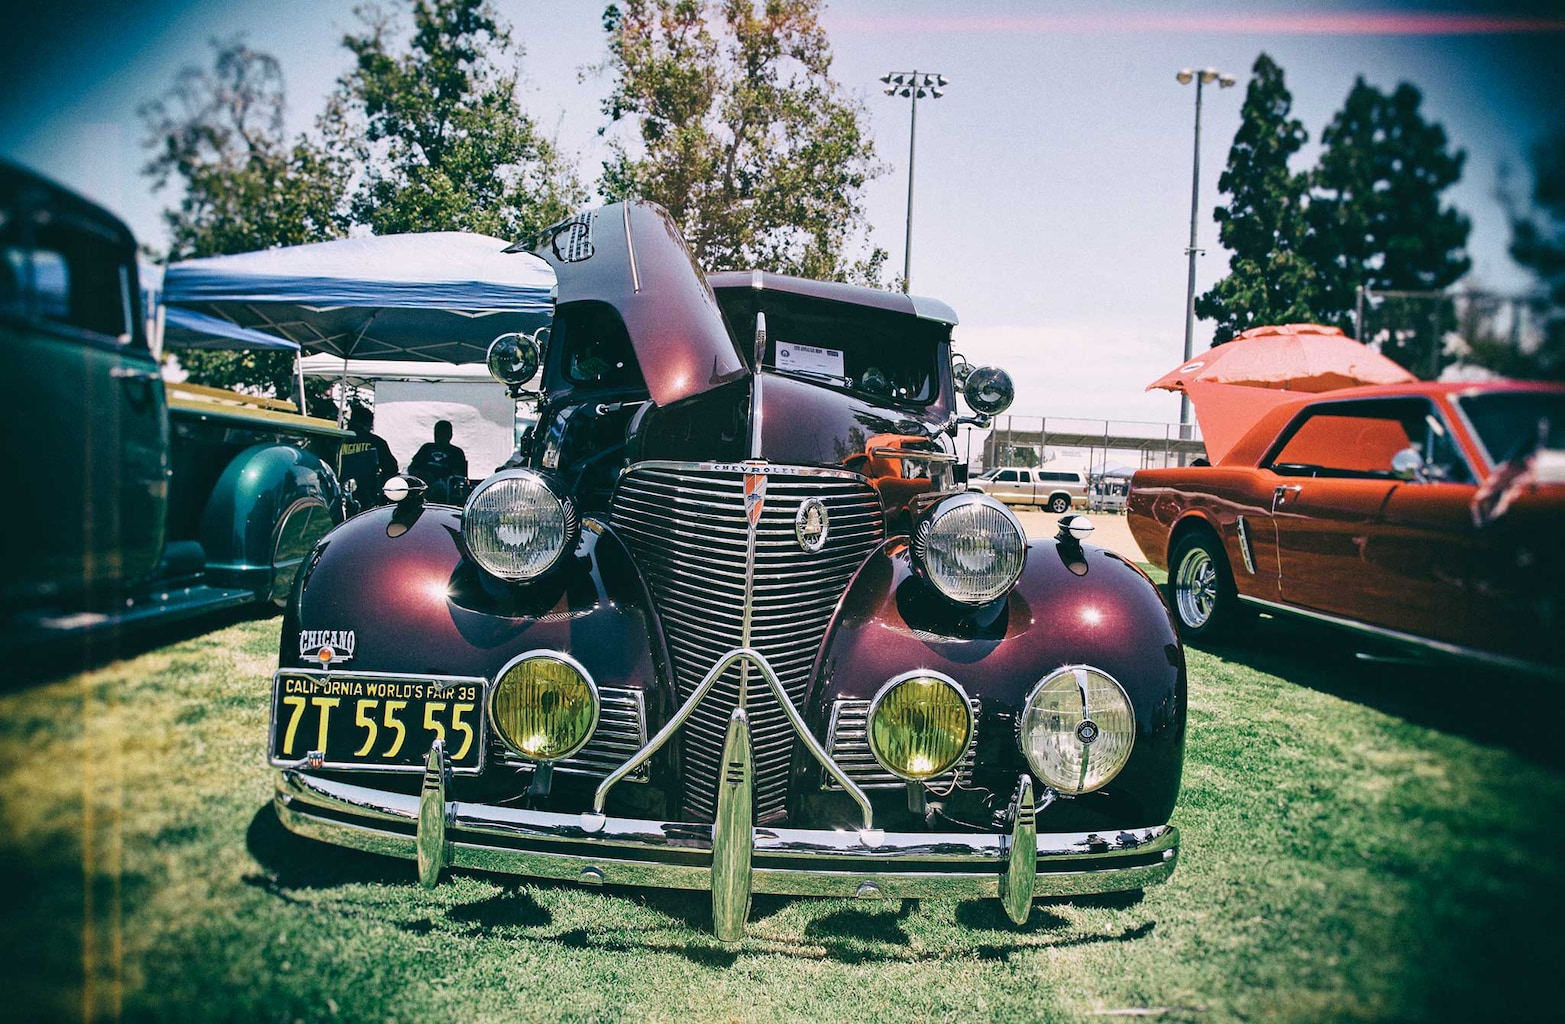 002 13th annual imperials car show and concert chevy master deluxe